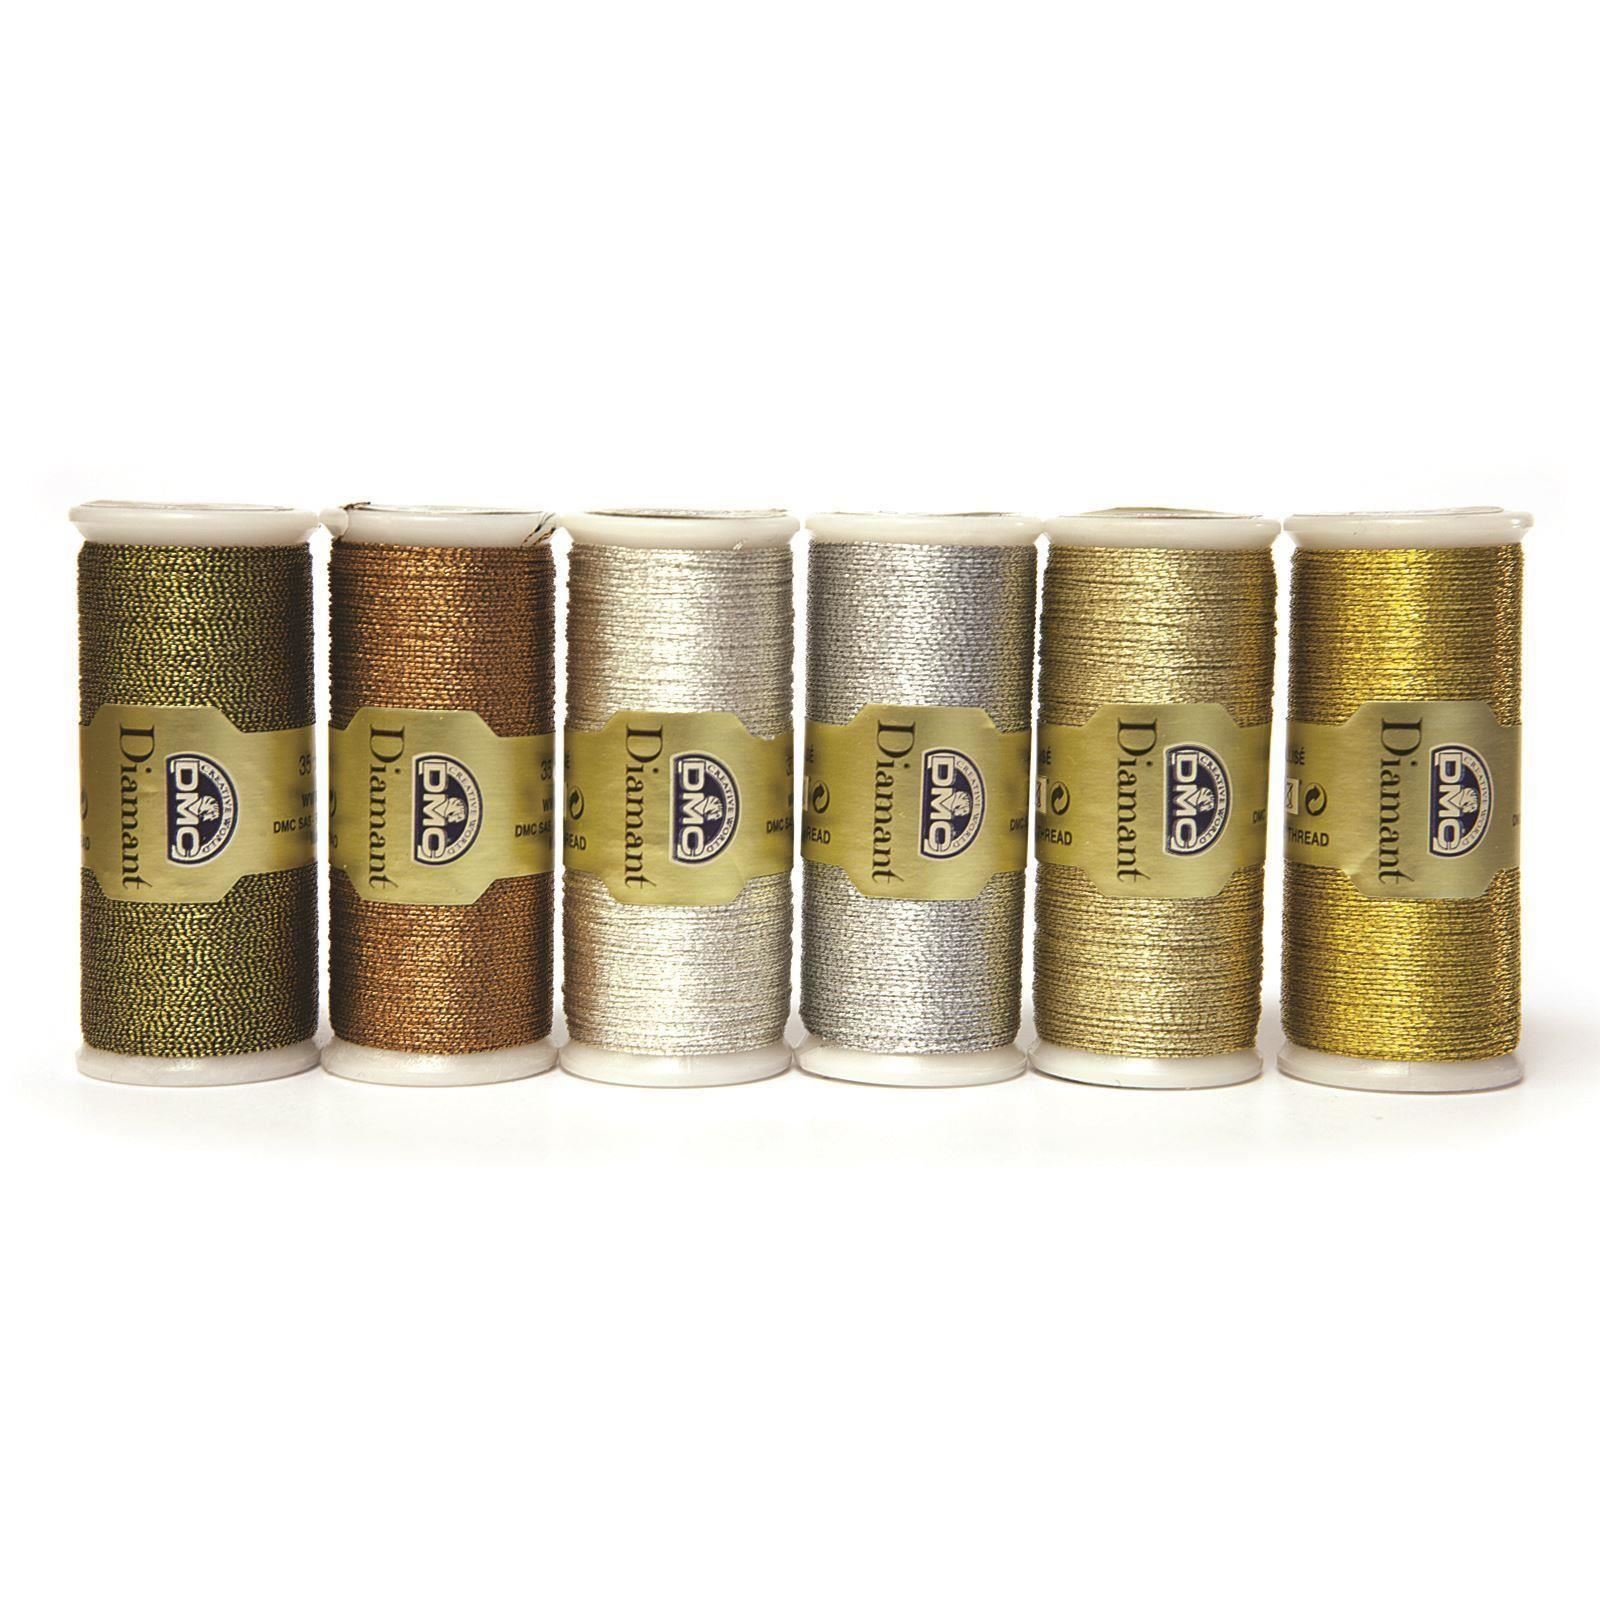 DMC-Diamant-Metallic-Embroidery-Thread-35m-Spool-Cross-Stitch thumbnail 52